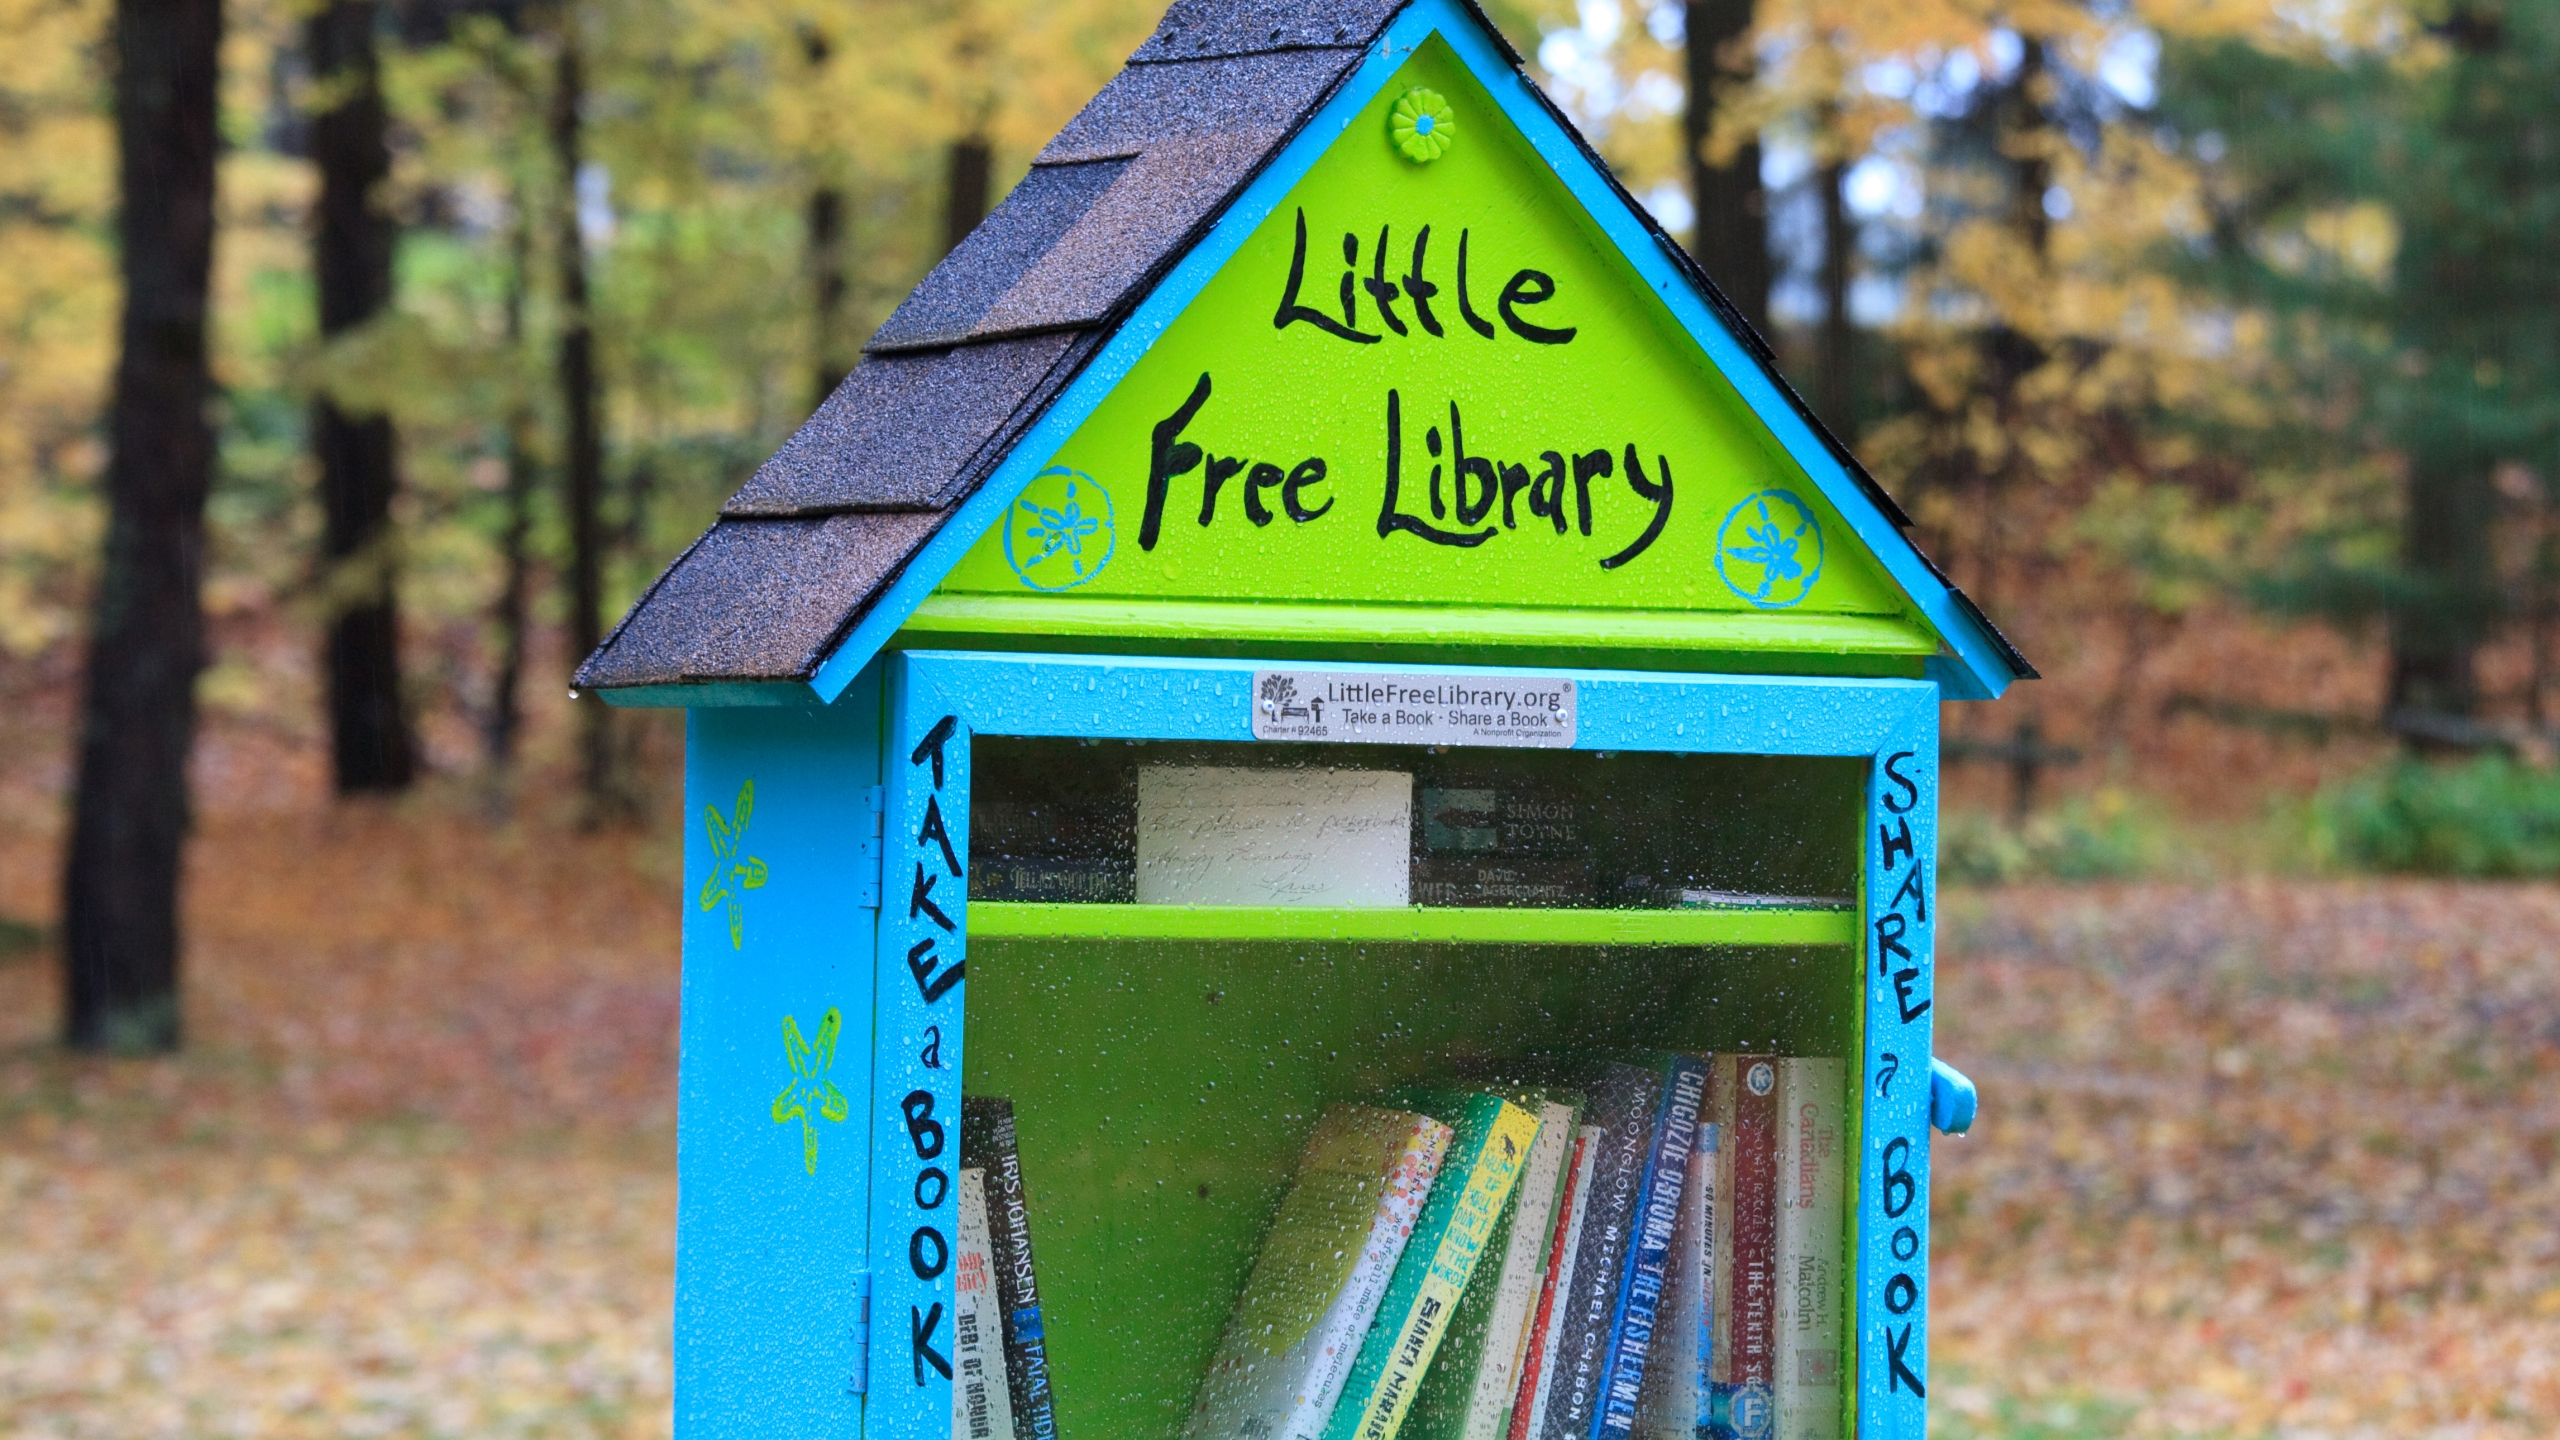 A Little Free Library is seen in an undated file photo. (Getty Images)